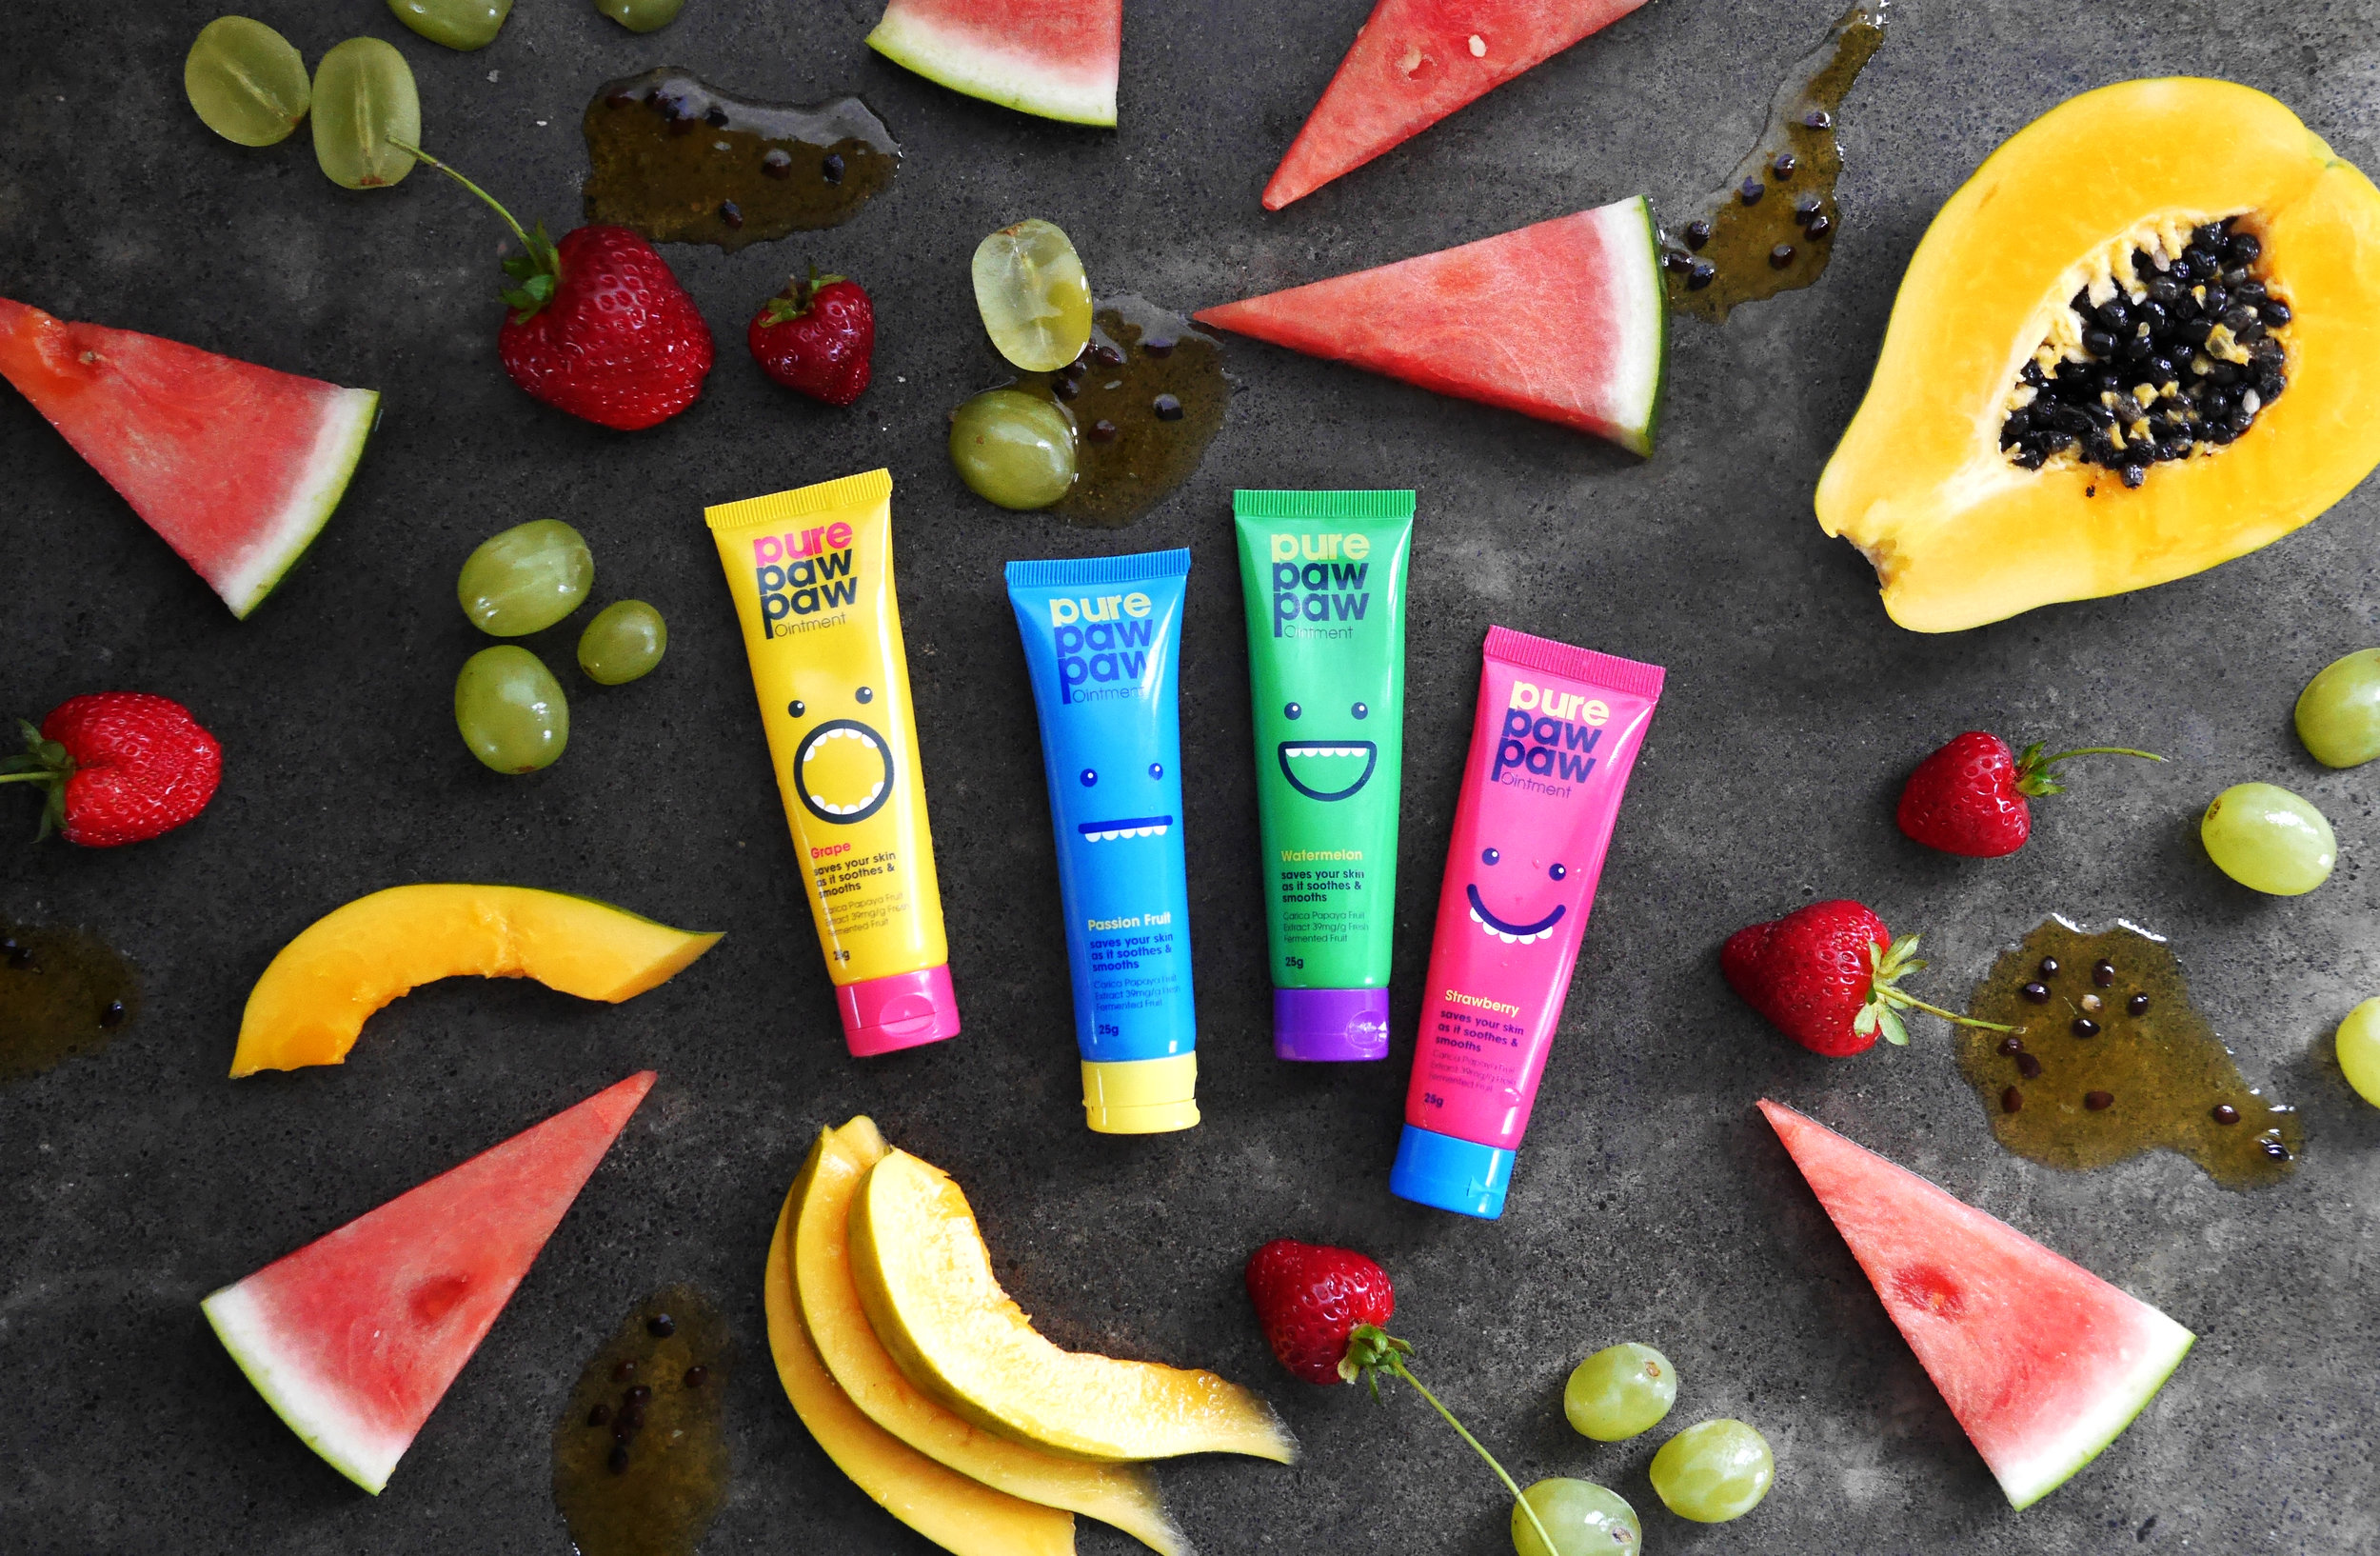 Paw paw product photography fun fruity flatlay